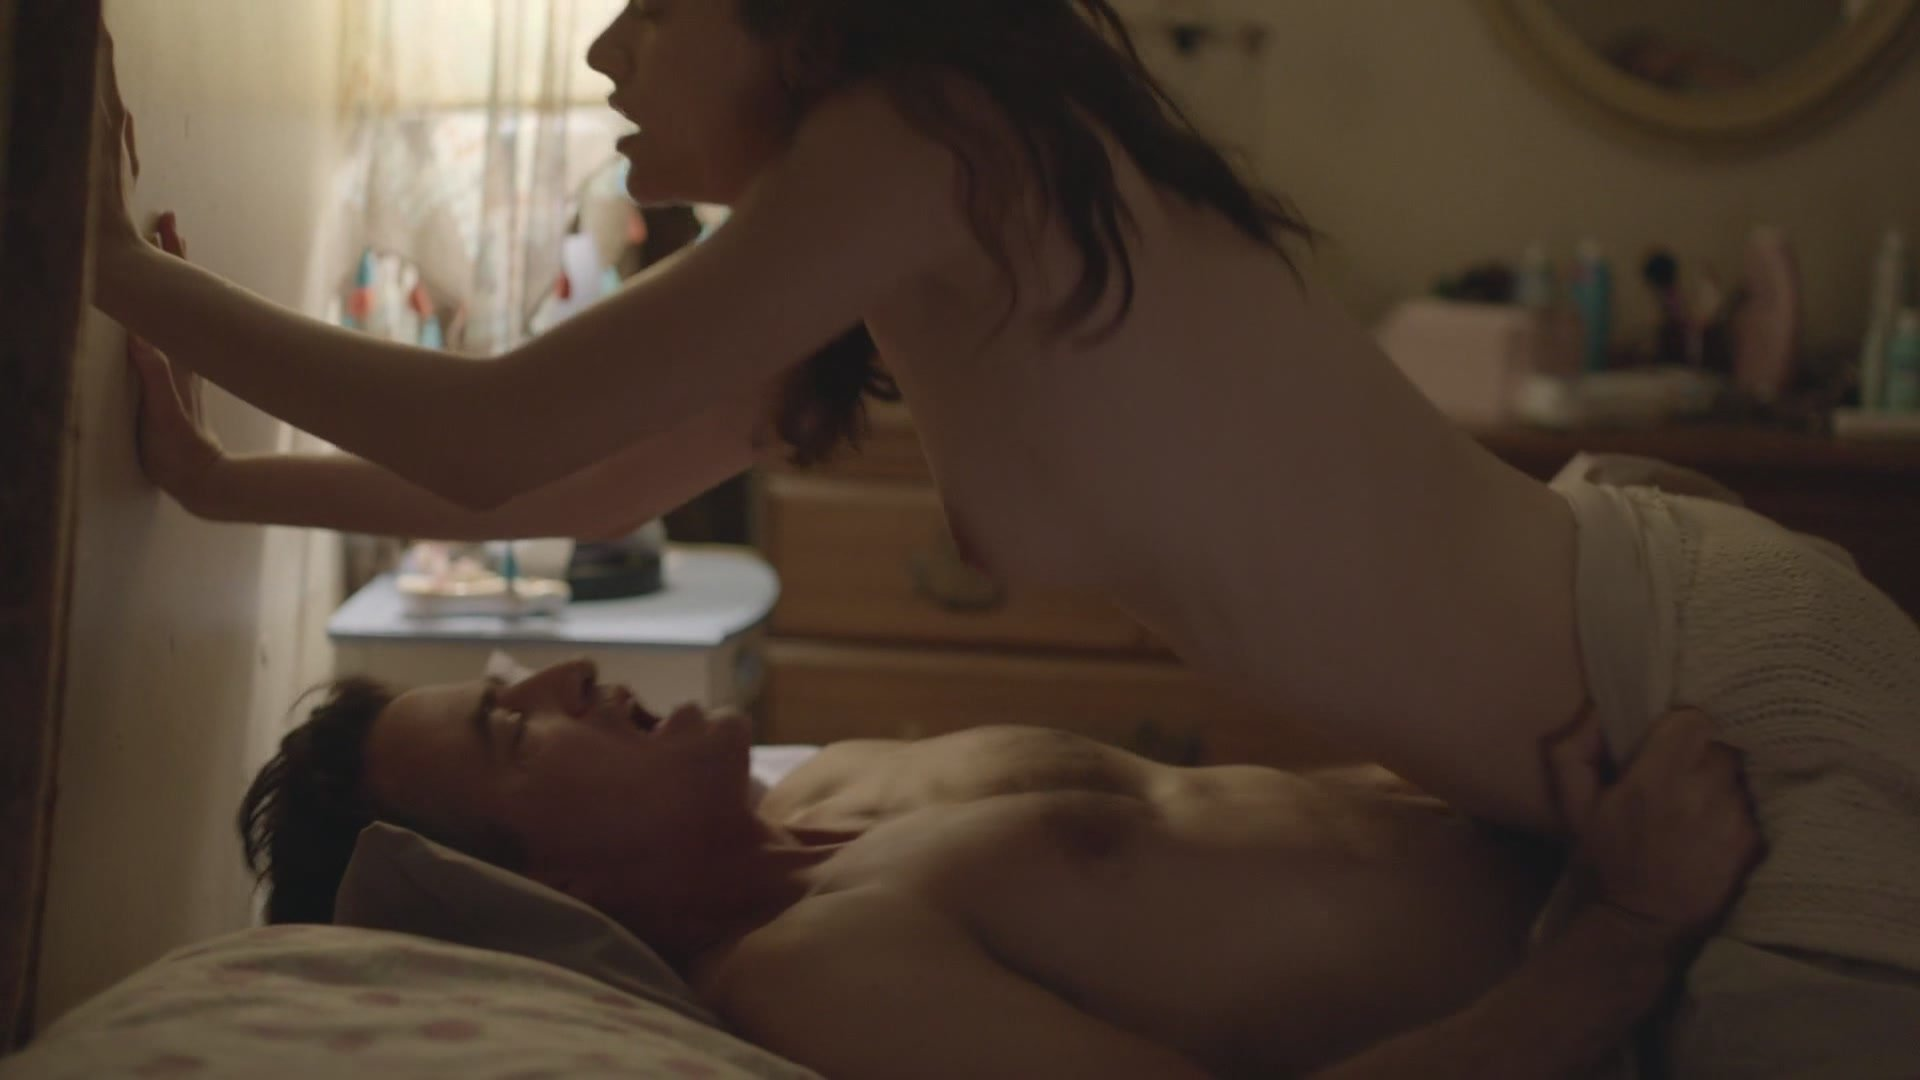 Emmy rossum nude shameless 2013 hd